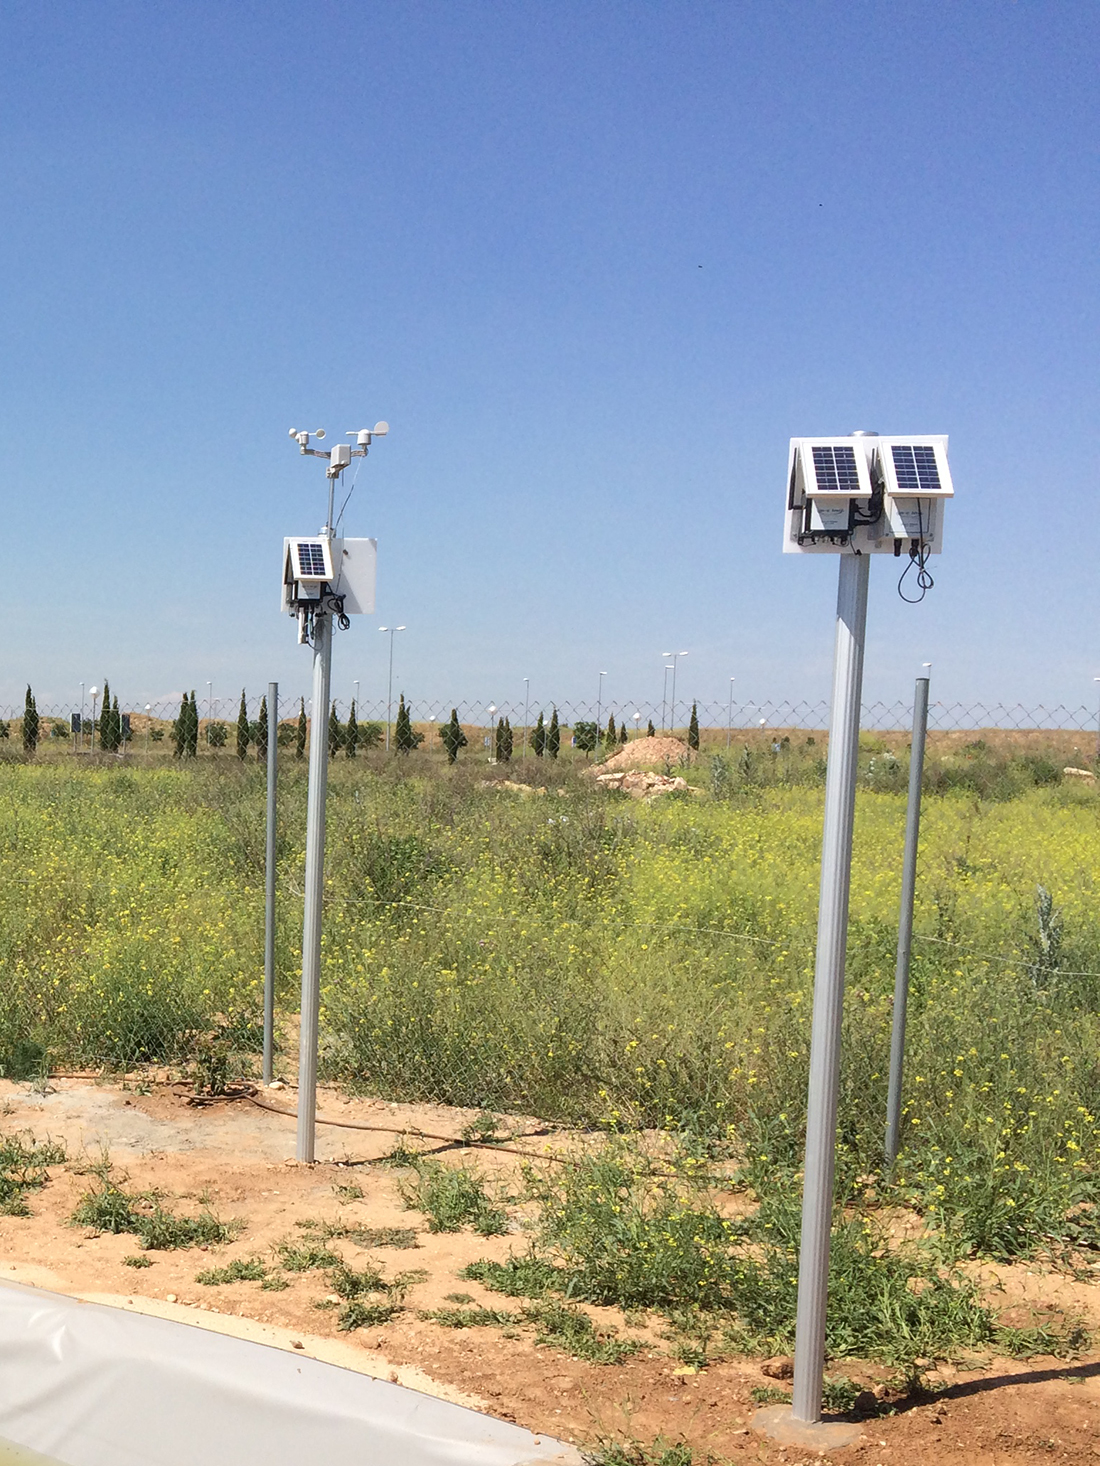 Waspmote Plug & Sense! Sensor Platforms at the wetland